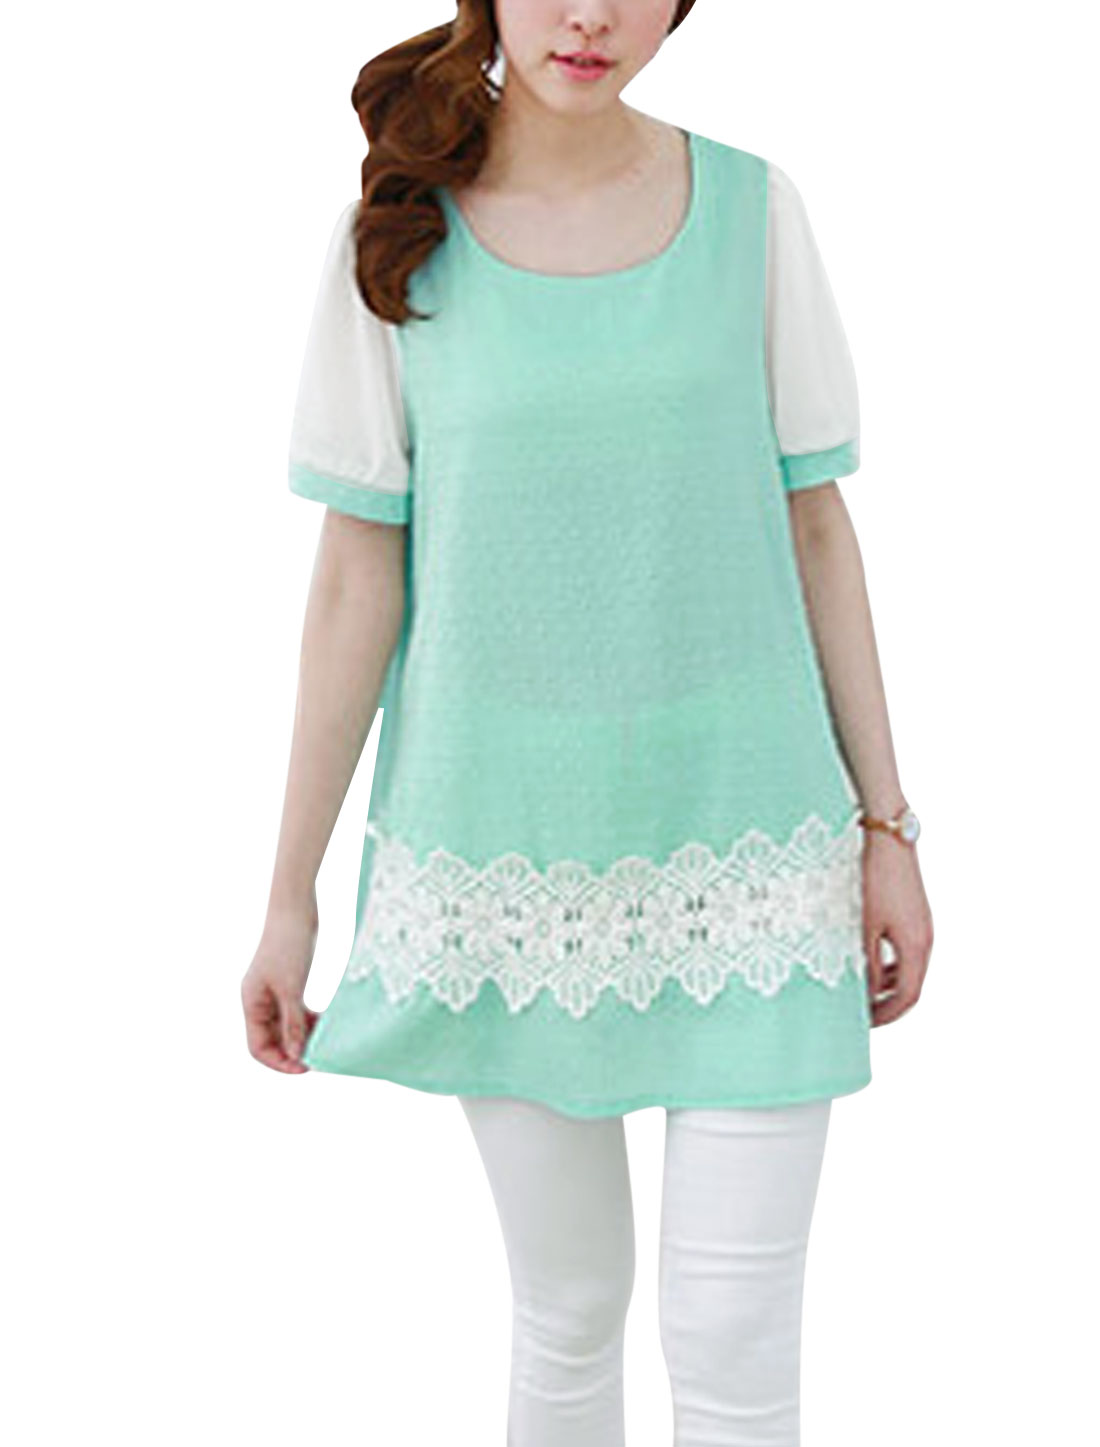 Lady NEW Studs Design Flower Crochet Panel Tunic Top Mint S